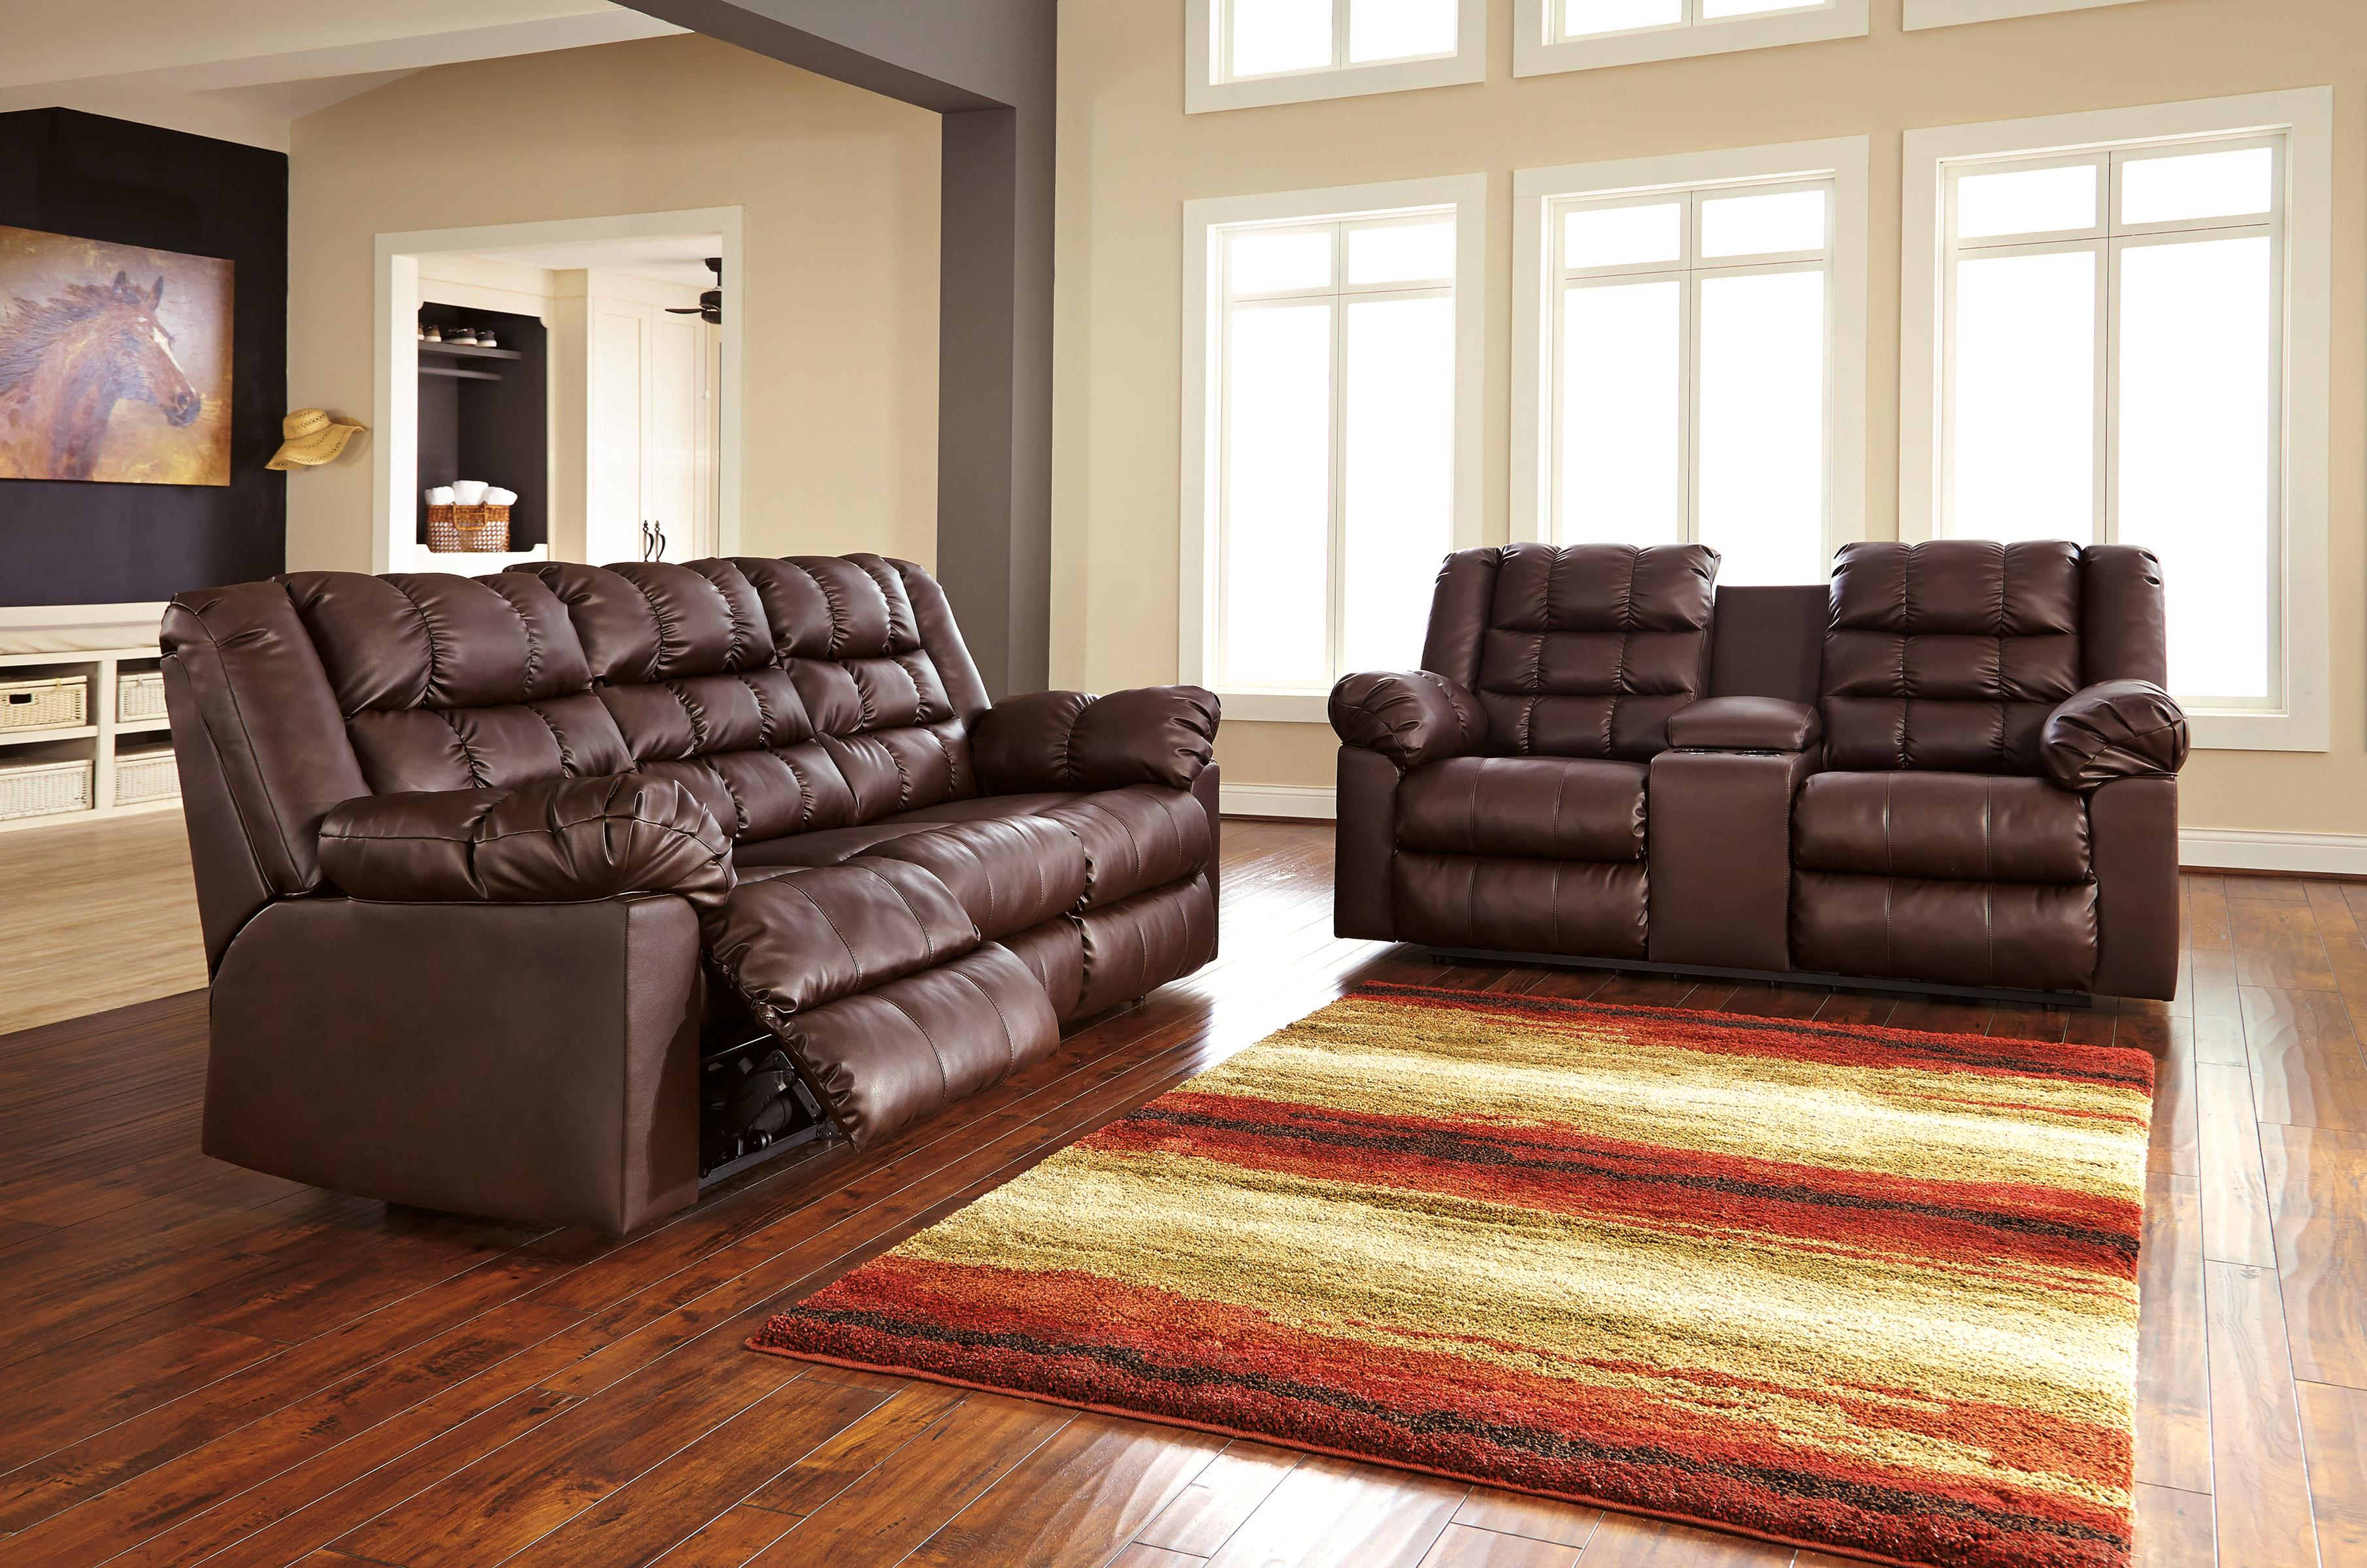 Signature Design by Ashley Brolayne DuraBlend® Reclining Living Room Group - Item Number: 83202 Living Room Group 1